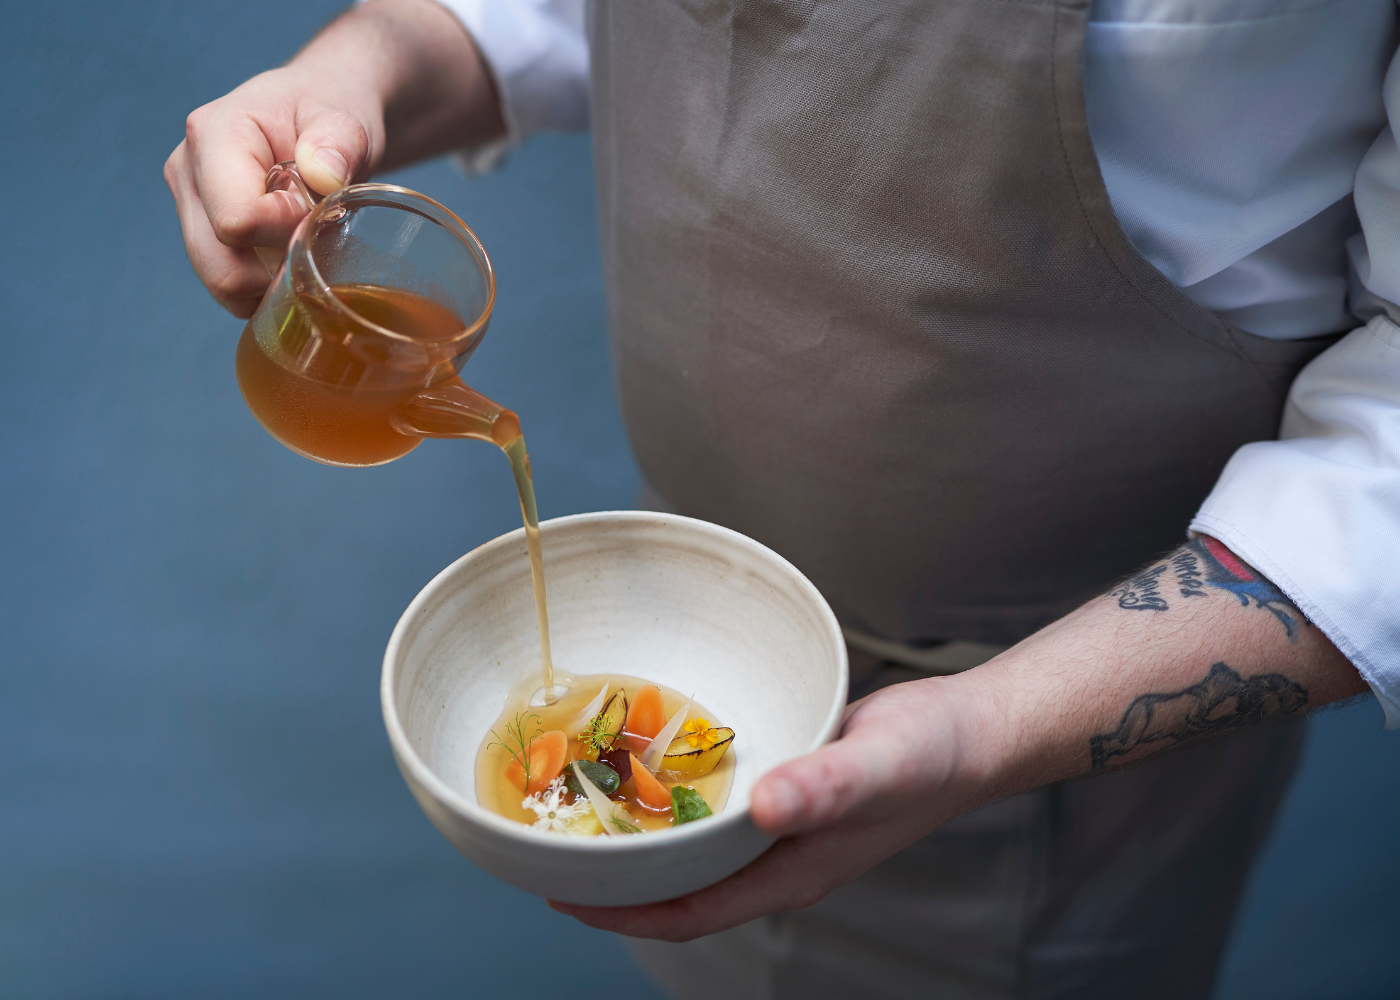 World's 50 Best Restaurants Award Week: Pre-award masterclasses, live discussion & collab menus to savour